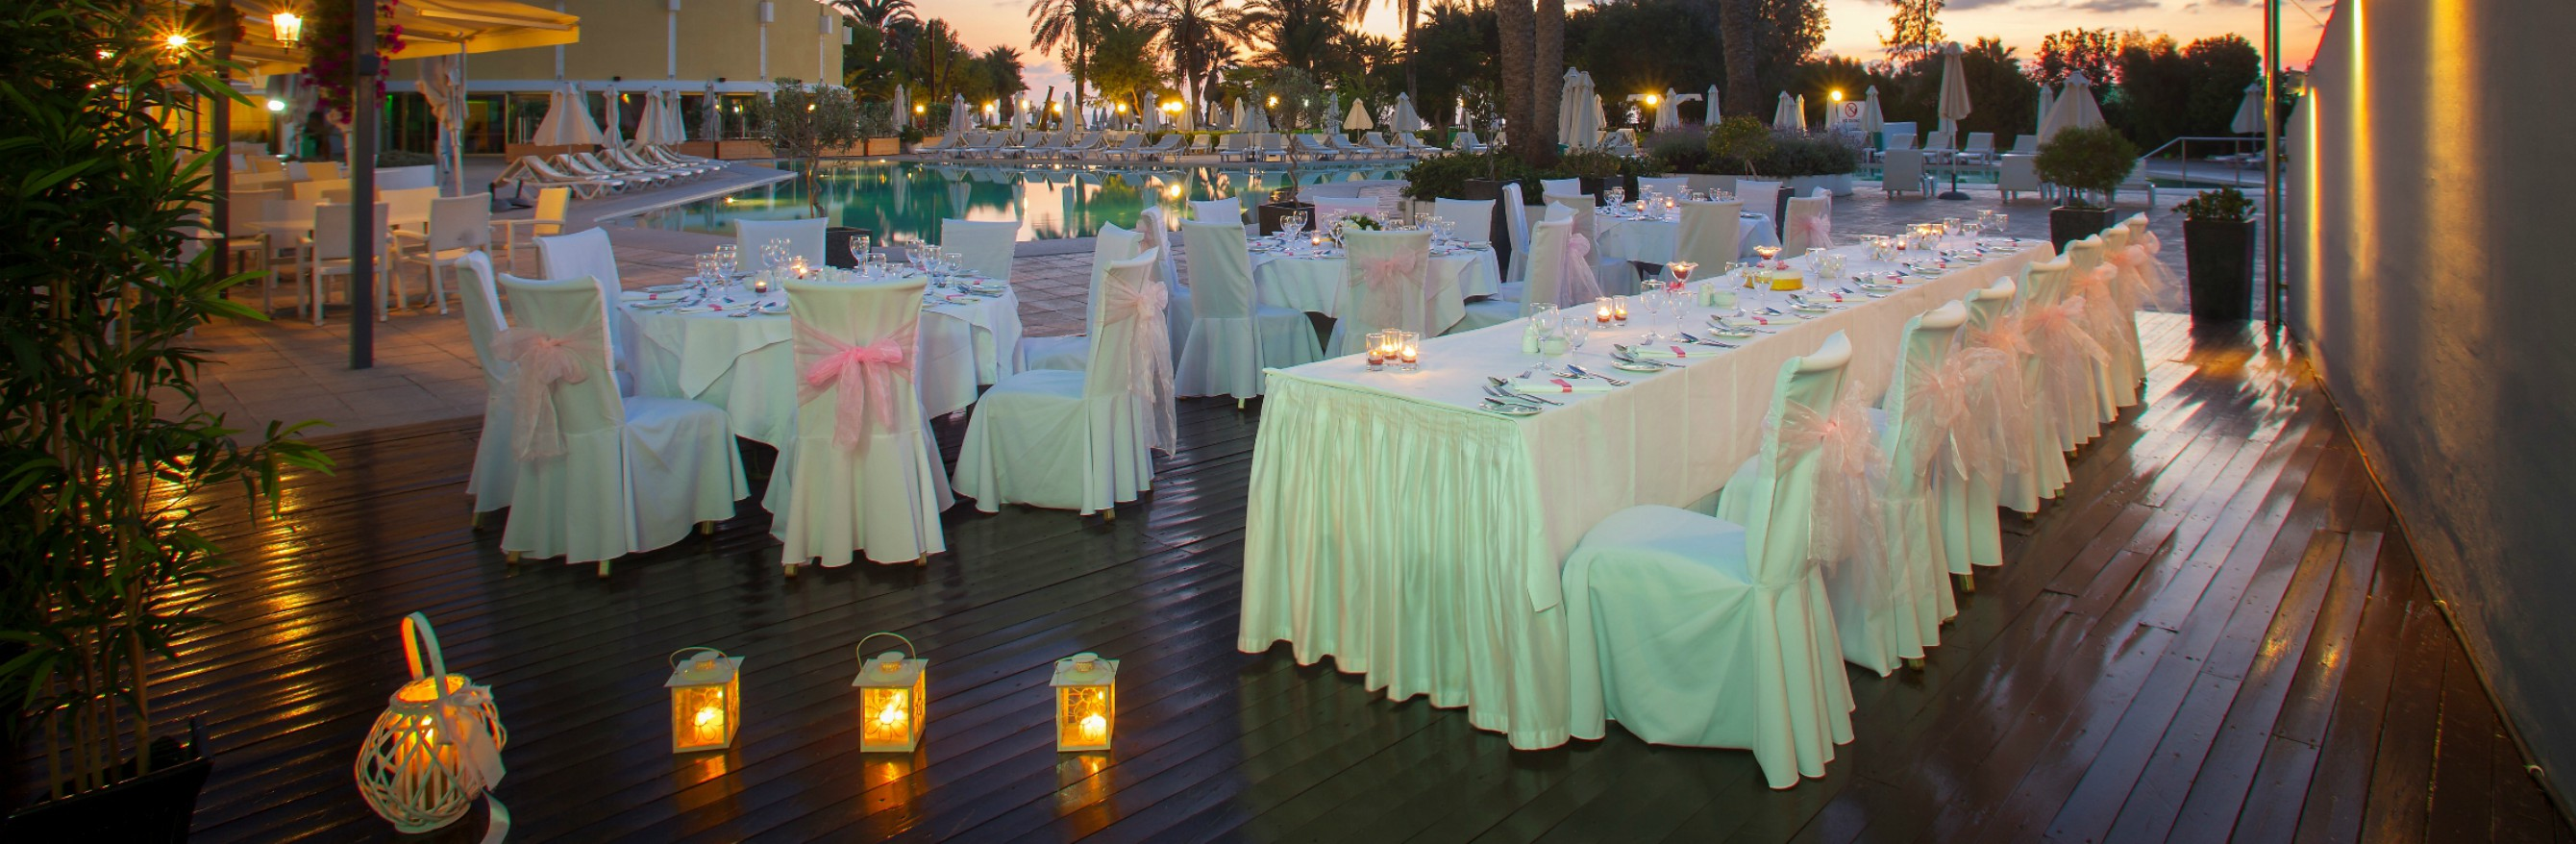 Louis_Imperial_Beach_-_Private_pool_area_dinner_10.jpg